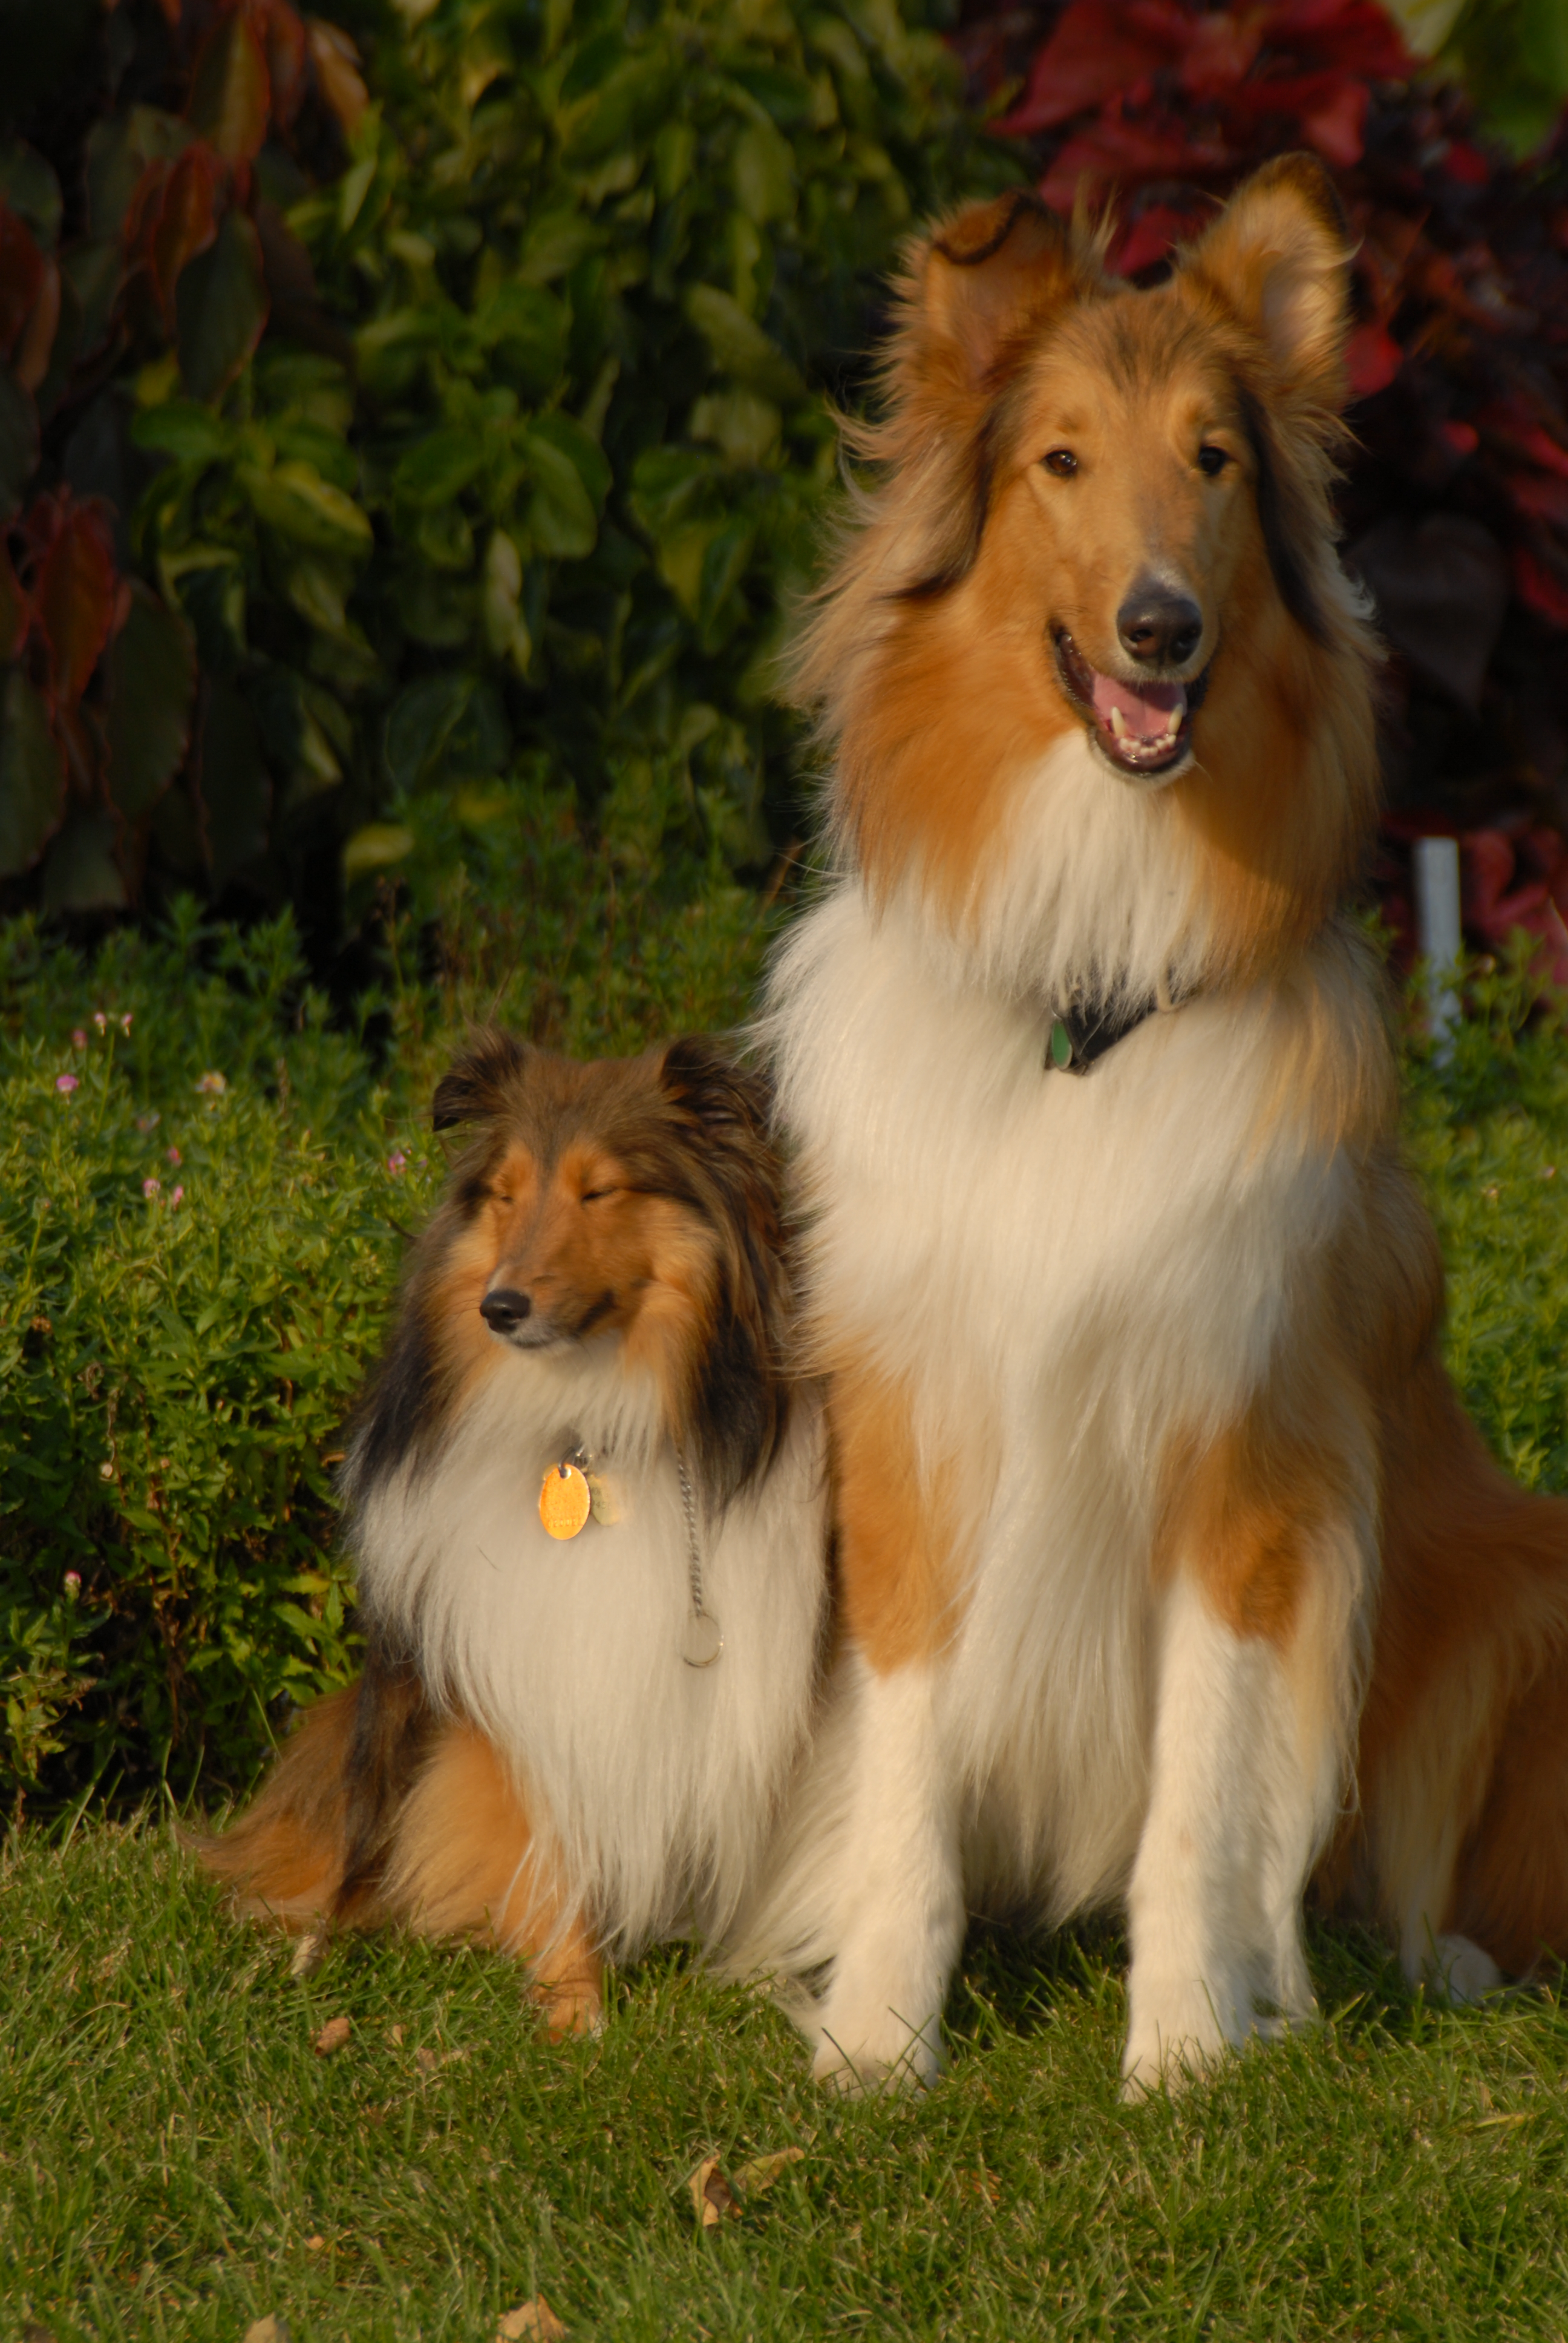 A Rough Guide To Types Of Scientific Evidence: Shepherd Class' Dog Breed